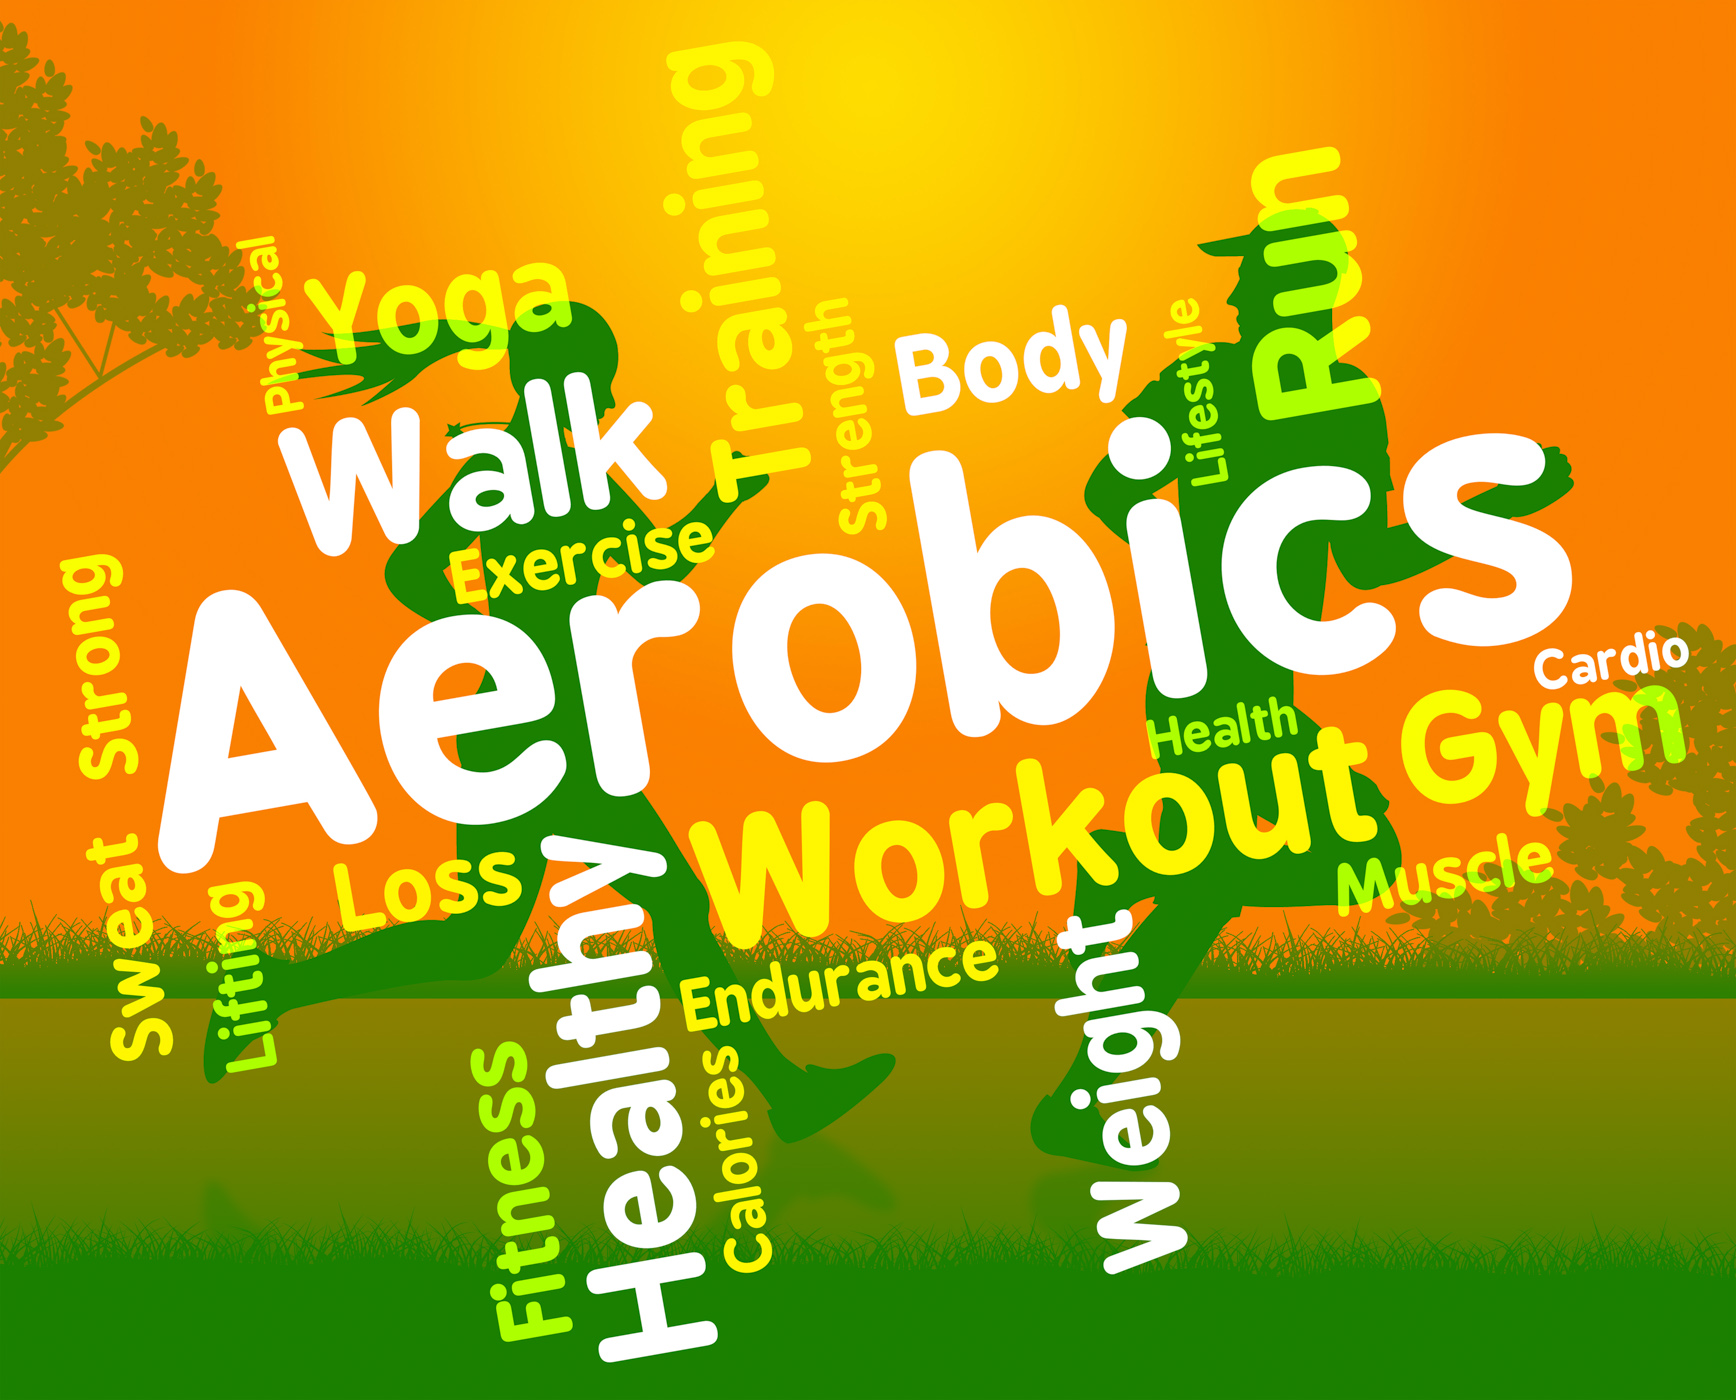 Aerobics Words Shows Get Fit And Cardio, Gym, Workingout, Work-out, Words, HQ Photo